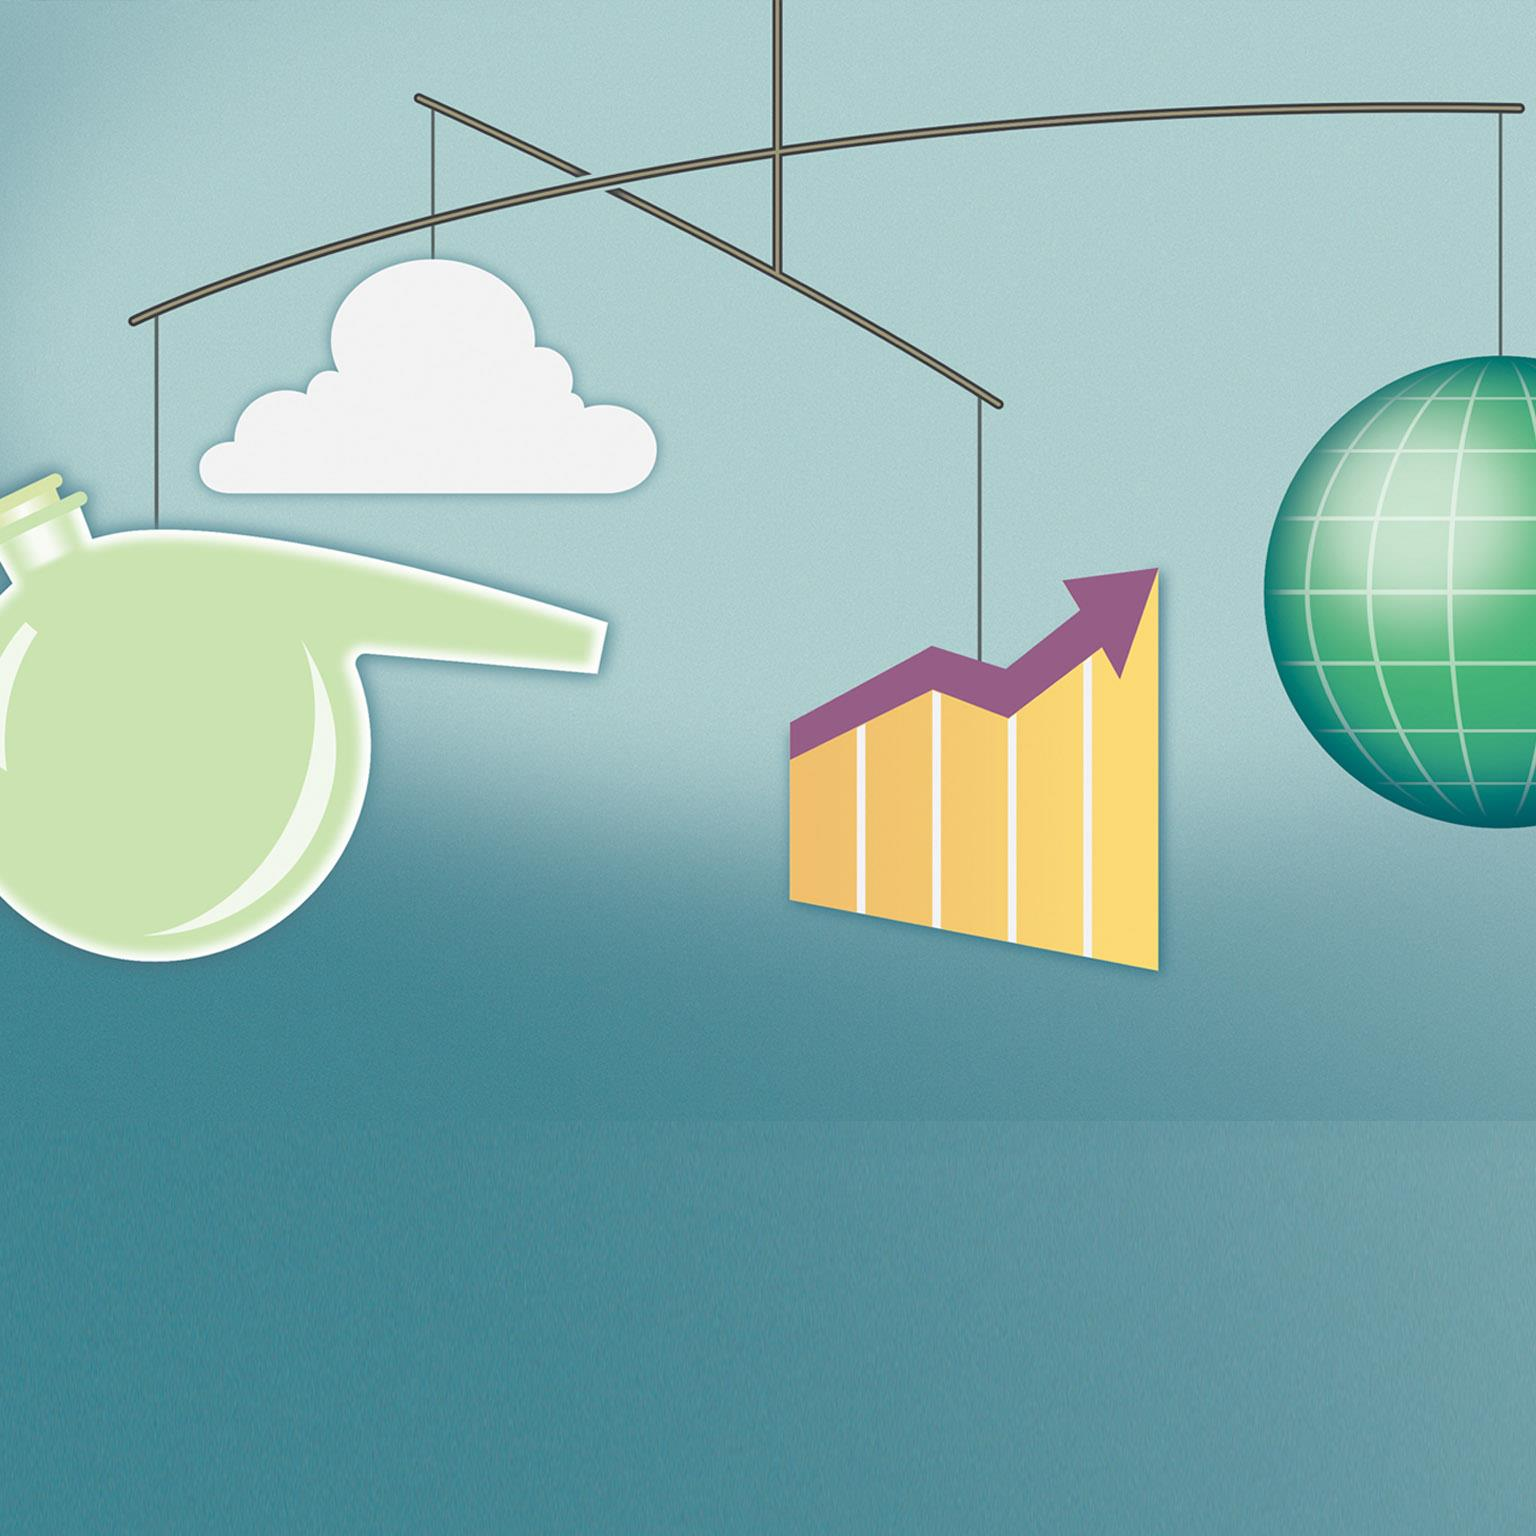 Chemicals 2025: Will the industry be dancing to a very different tune?